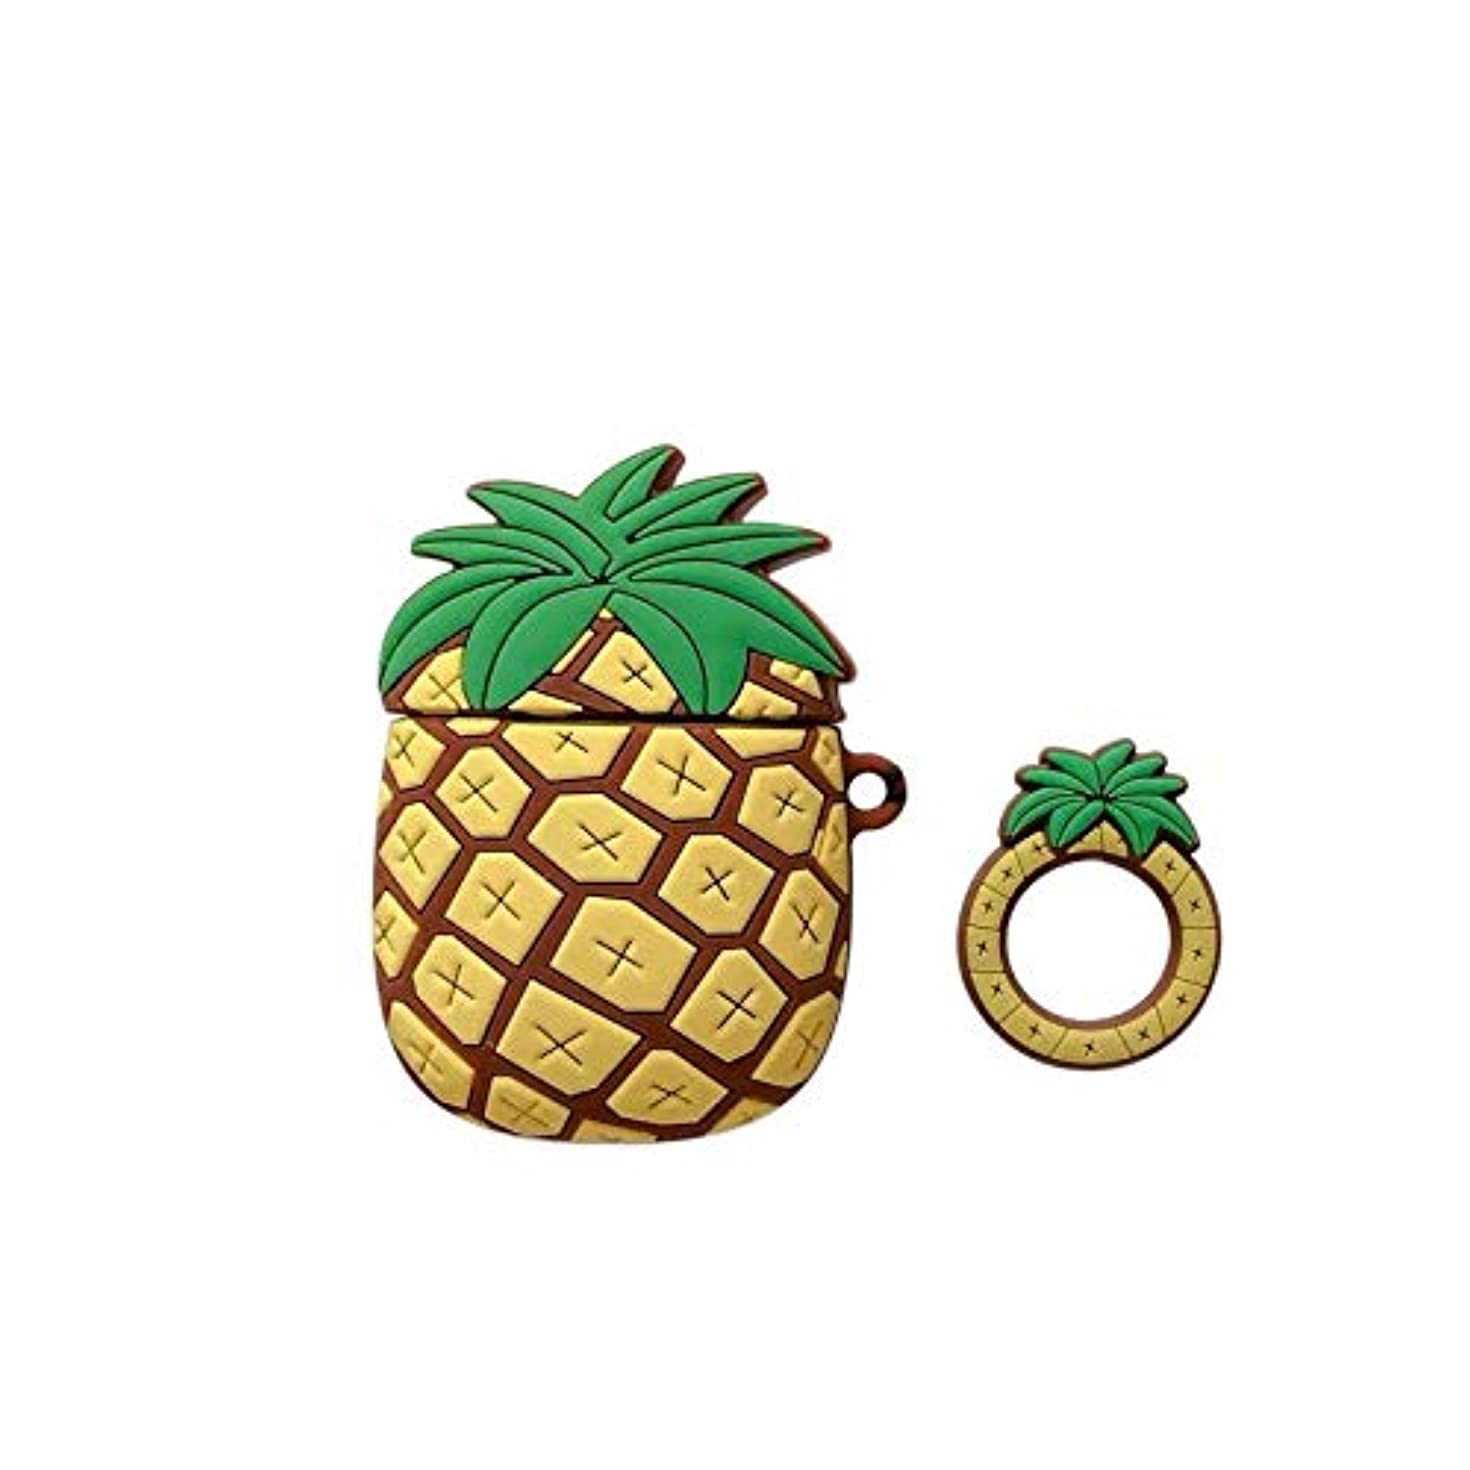 Soft Silicone Pineapple Case Finger Loop for Apple Airpods with Charging Case 1 2 Yellow Green 3D Cartoon Fruit Protector Cute Lovely Luxury Designer High Fashion Fun Girls Boys